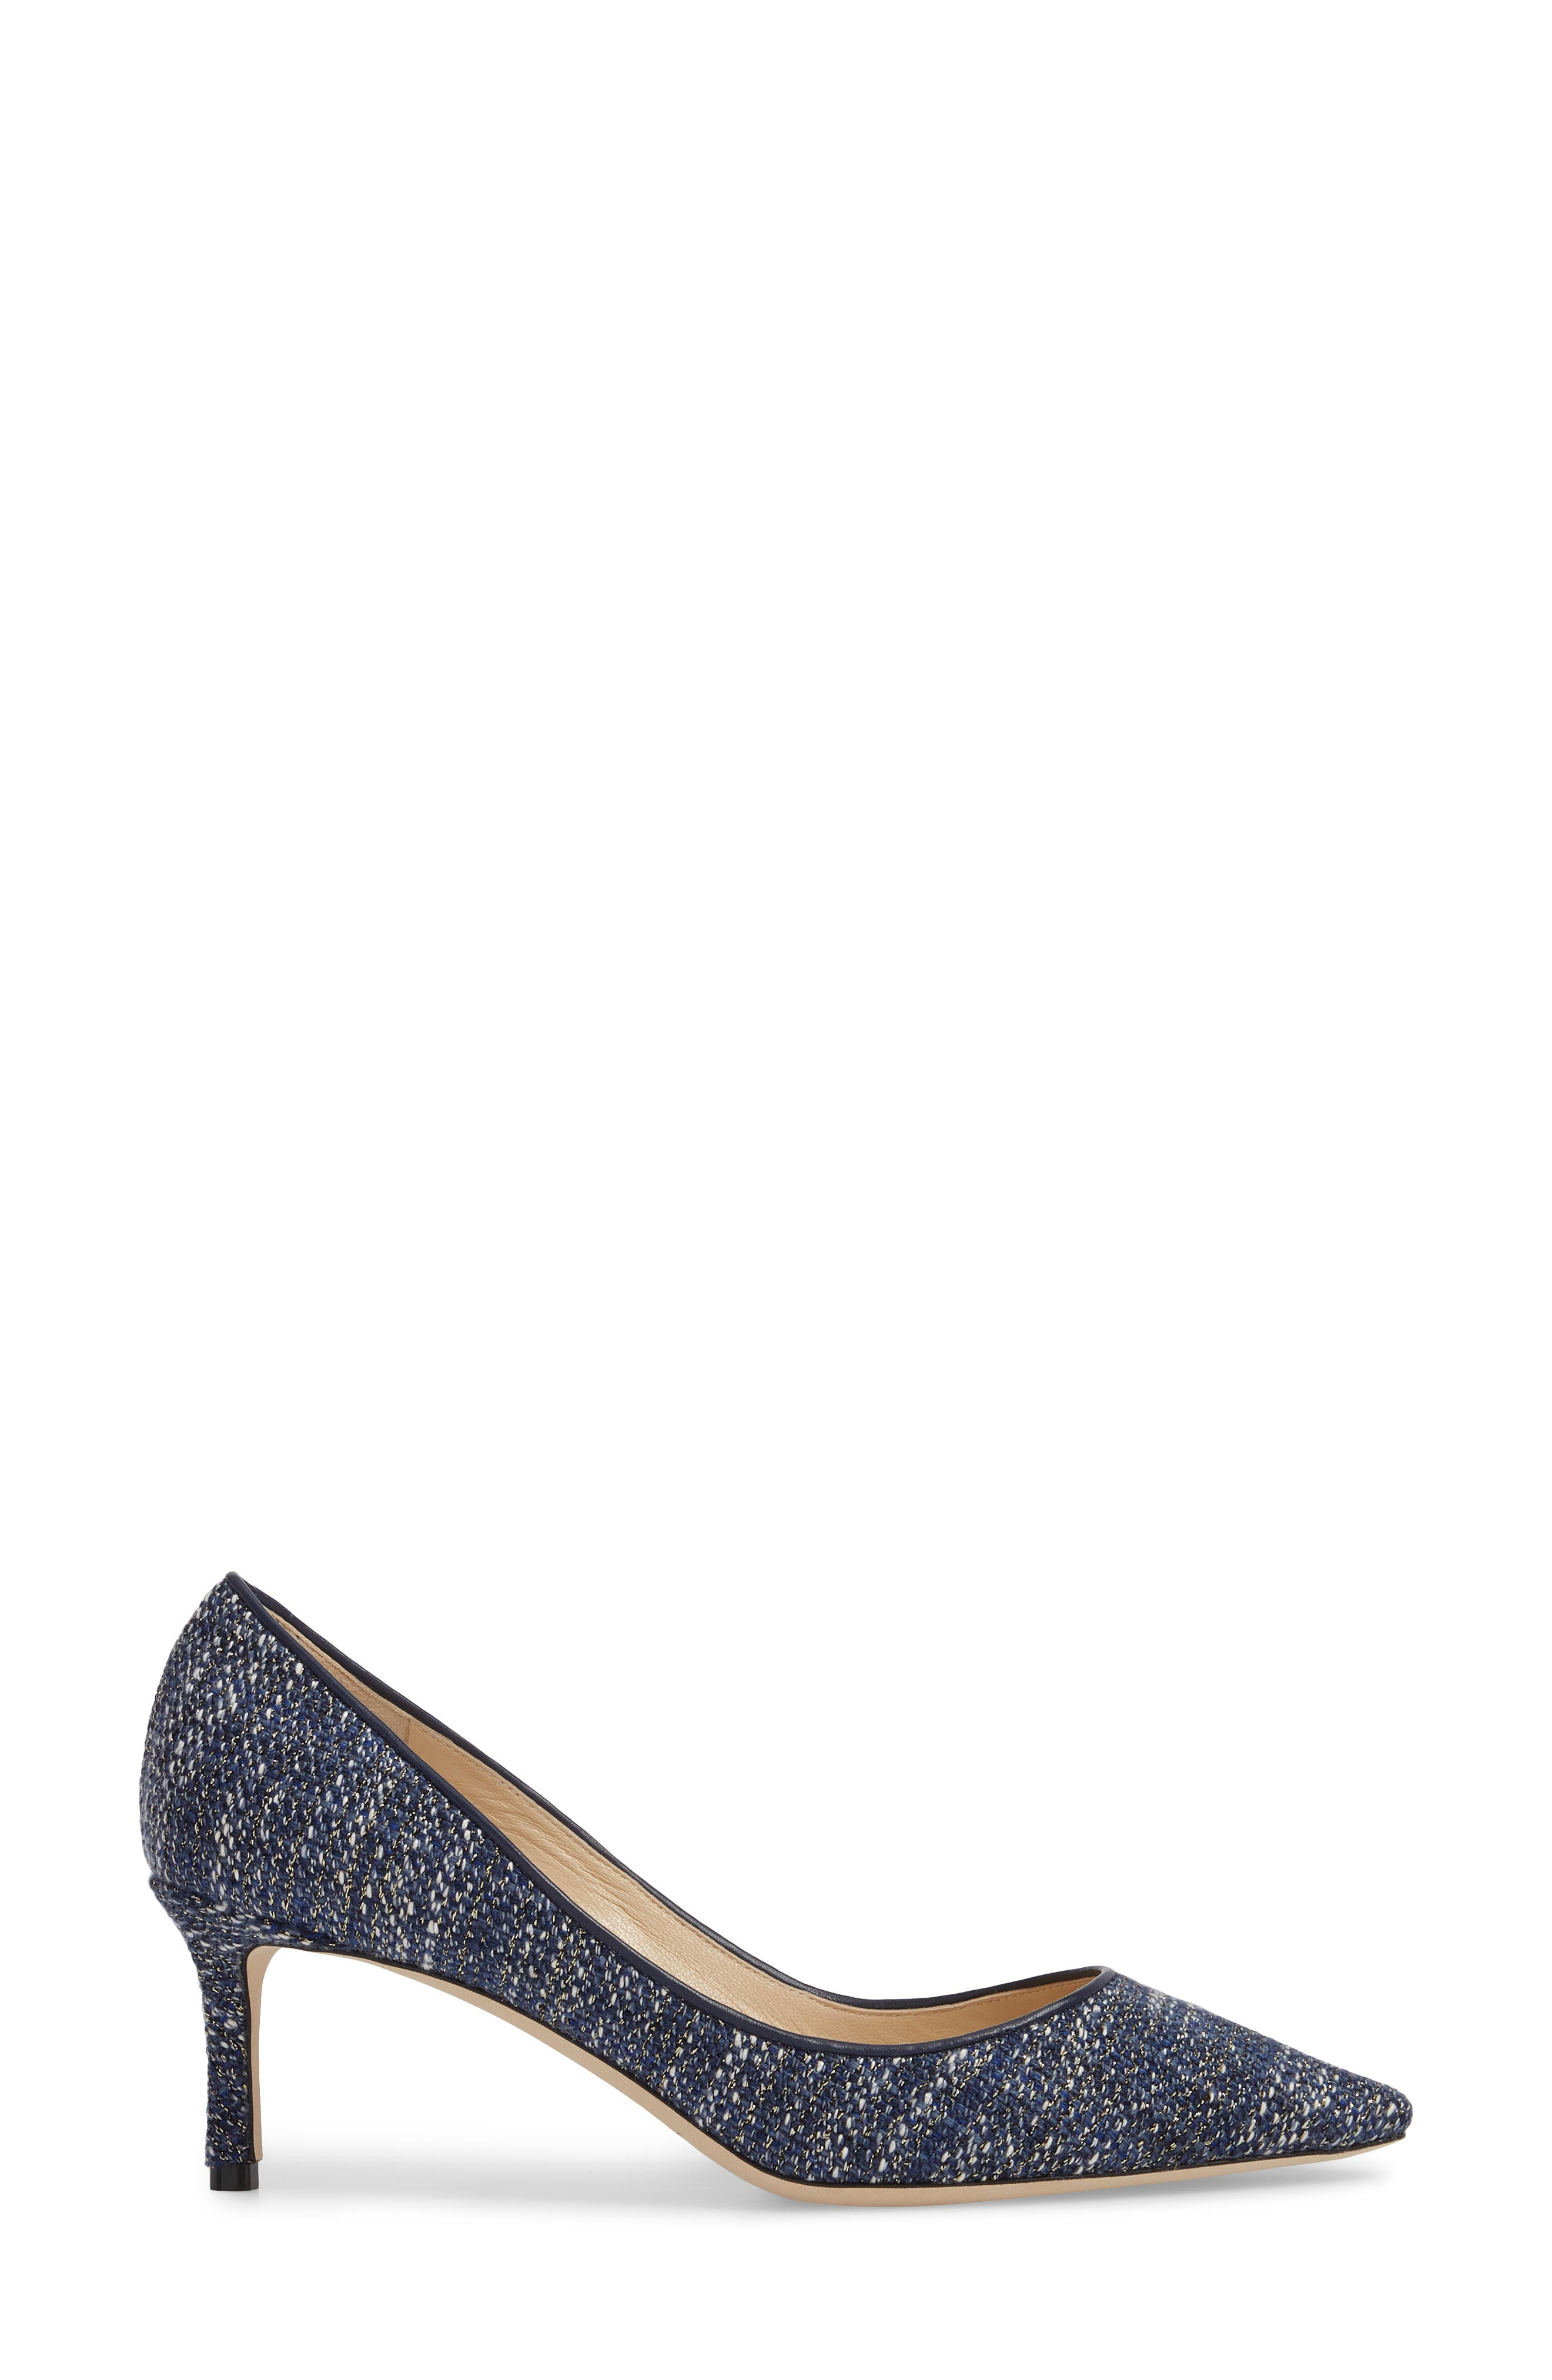 Romy Woven Pointy Toe Pump,                             Alternate thumbnail 3, color,                             410